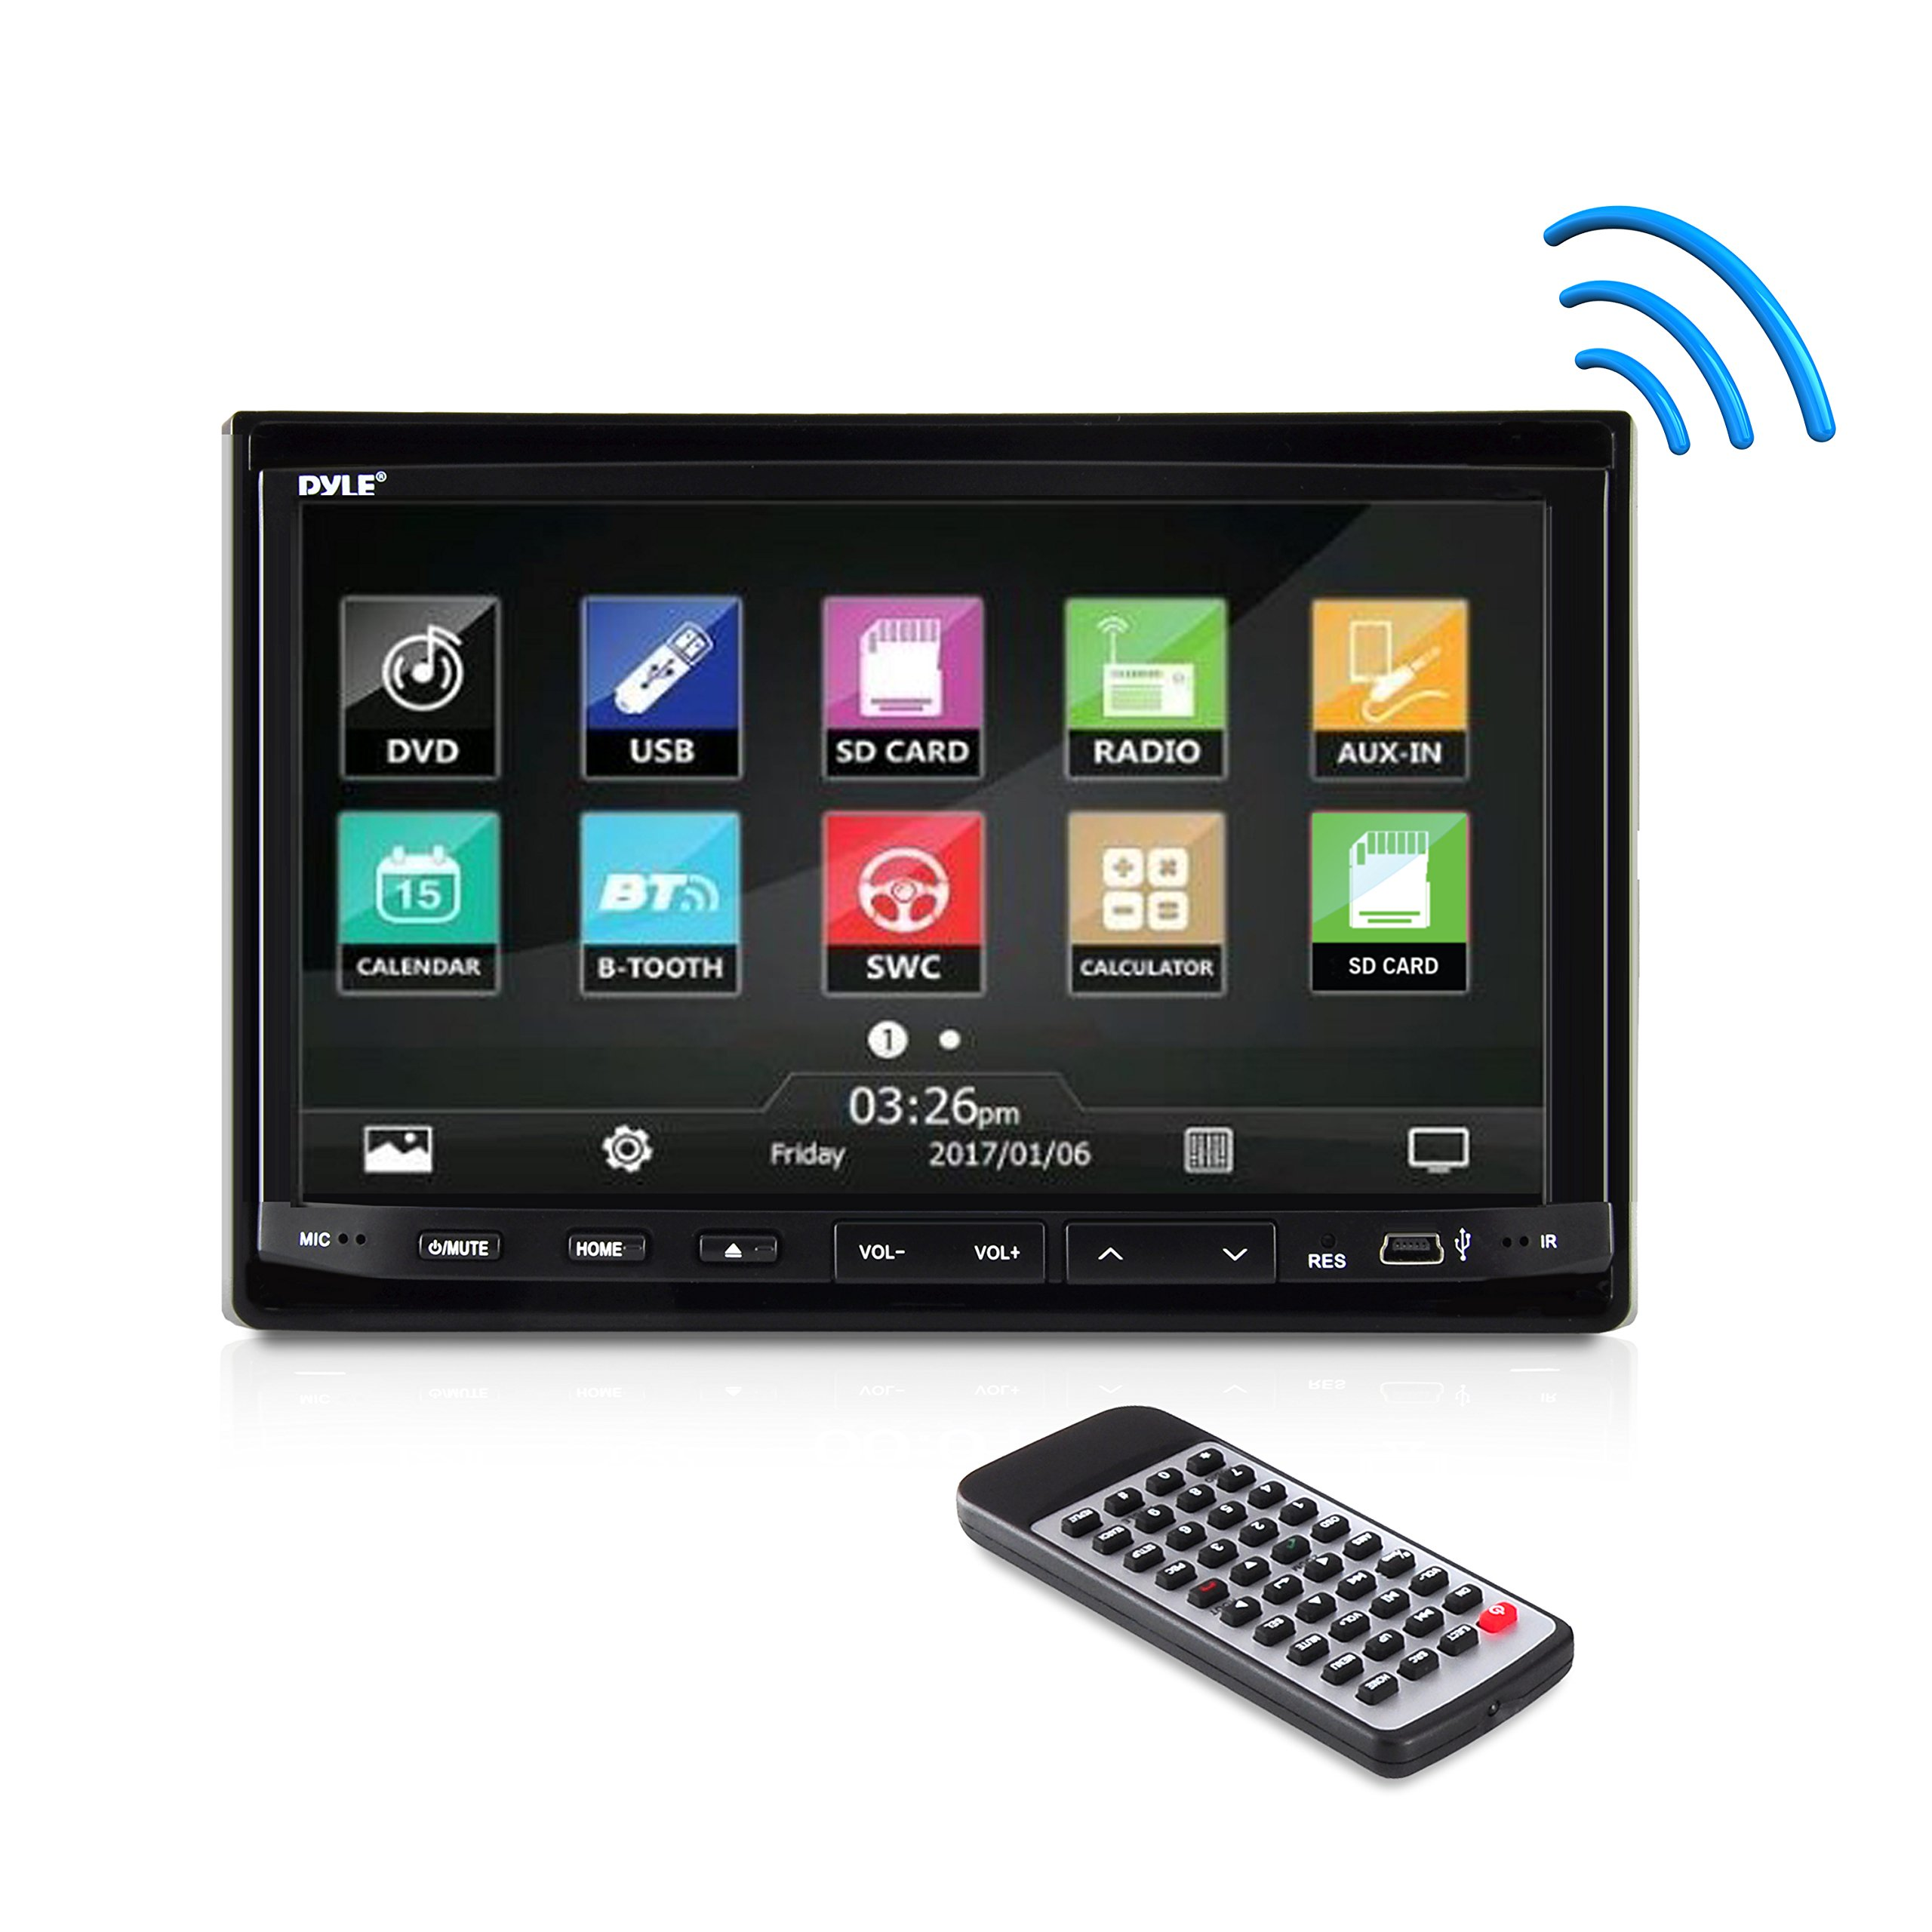 Pyle PLDN744 7-Inch Double Din In-Dash Motorized Slide-Down Touch Screen Car Stereo Receiver with Bluetooth, Disc/MP3/MP4 Player, AM/FM Radio, Microphone and SD Memory Card Reader